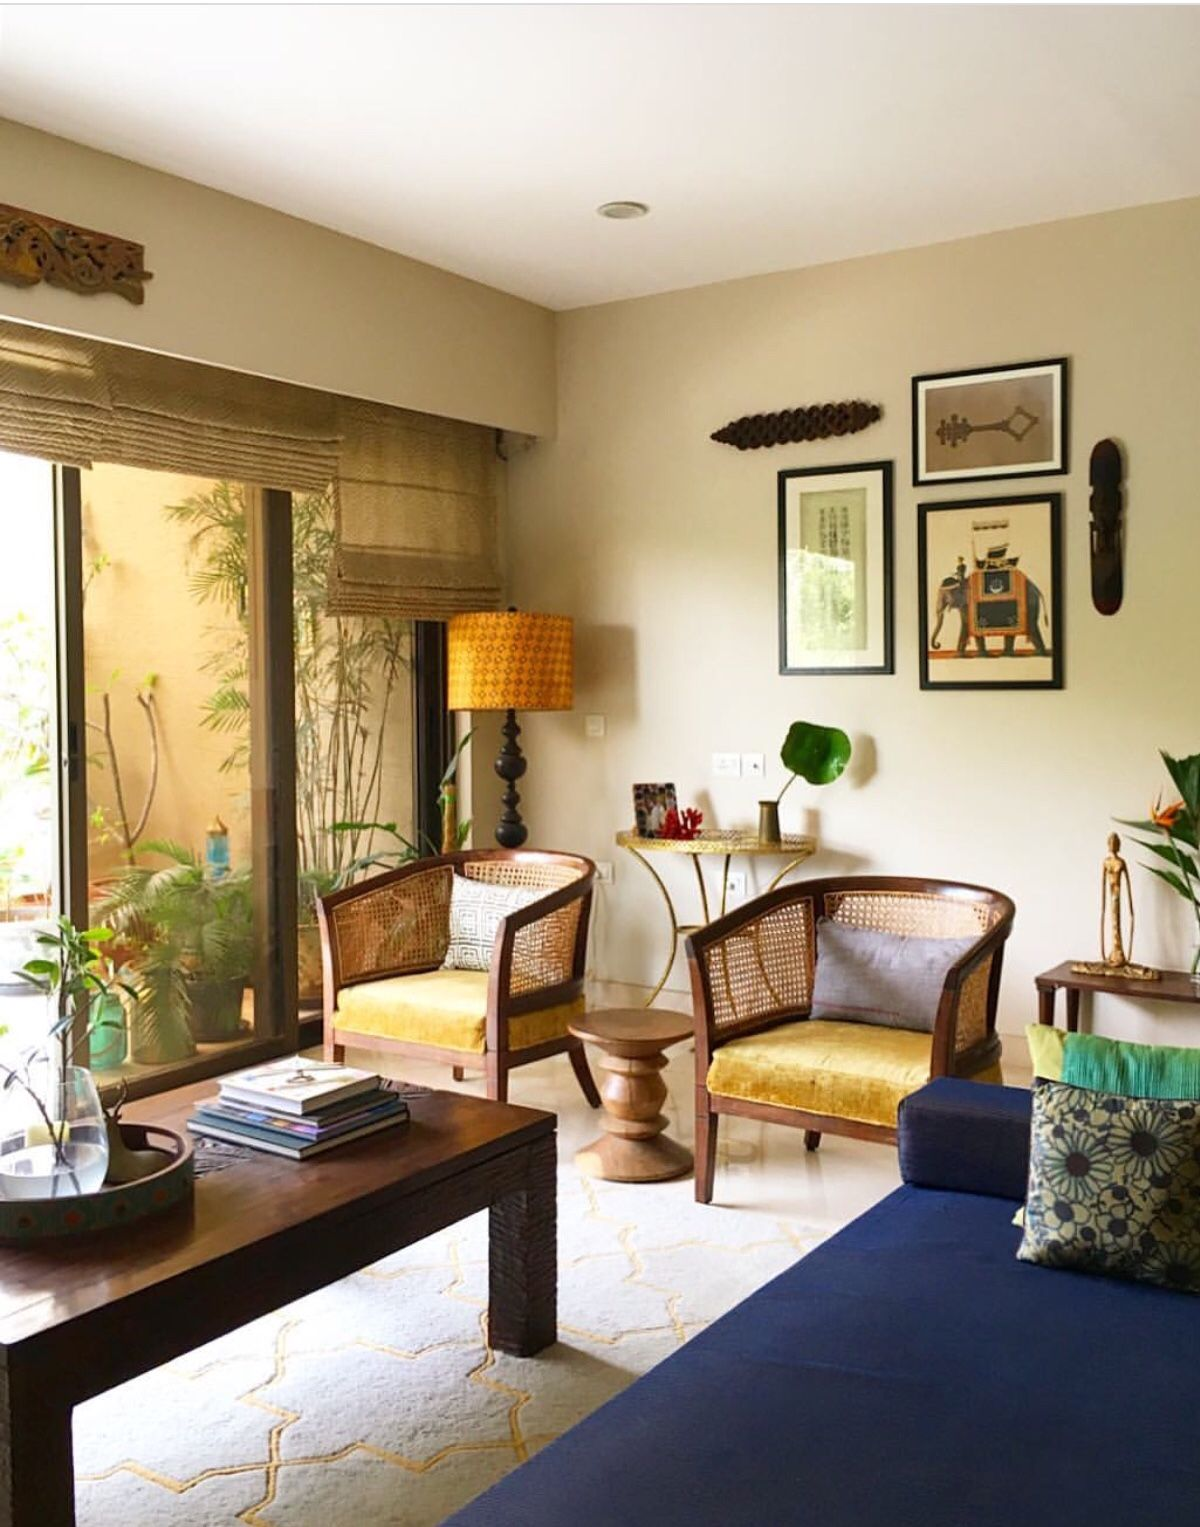 Cane chair decor indian home interior homes decoration also roof living room dining seating ideas in rh pinterest